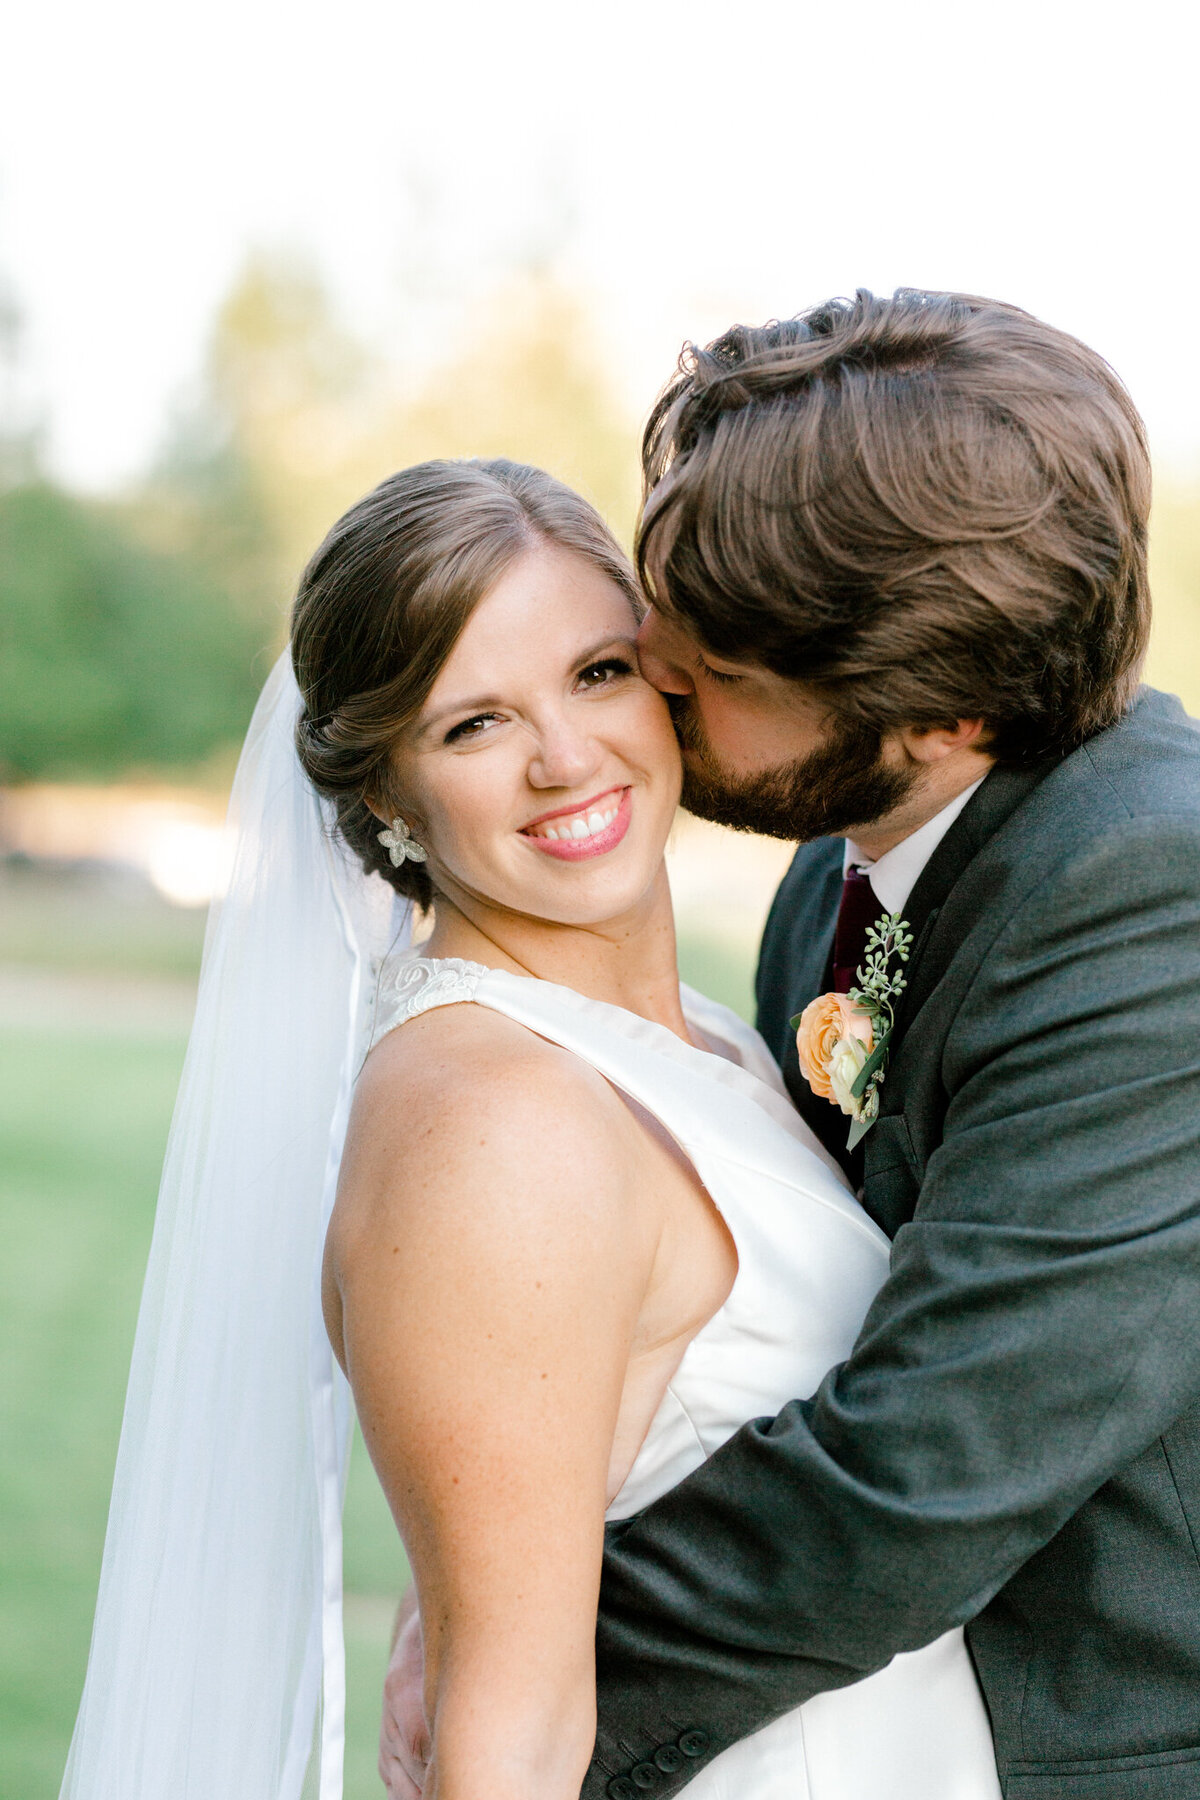 Kaylee & Michael's Wedding at Watermark Community Church | Dallas Wedding Photographer | Sami Kathryn Photography-14